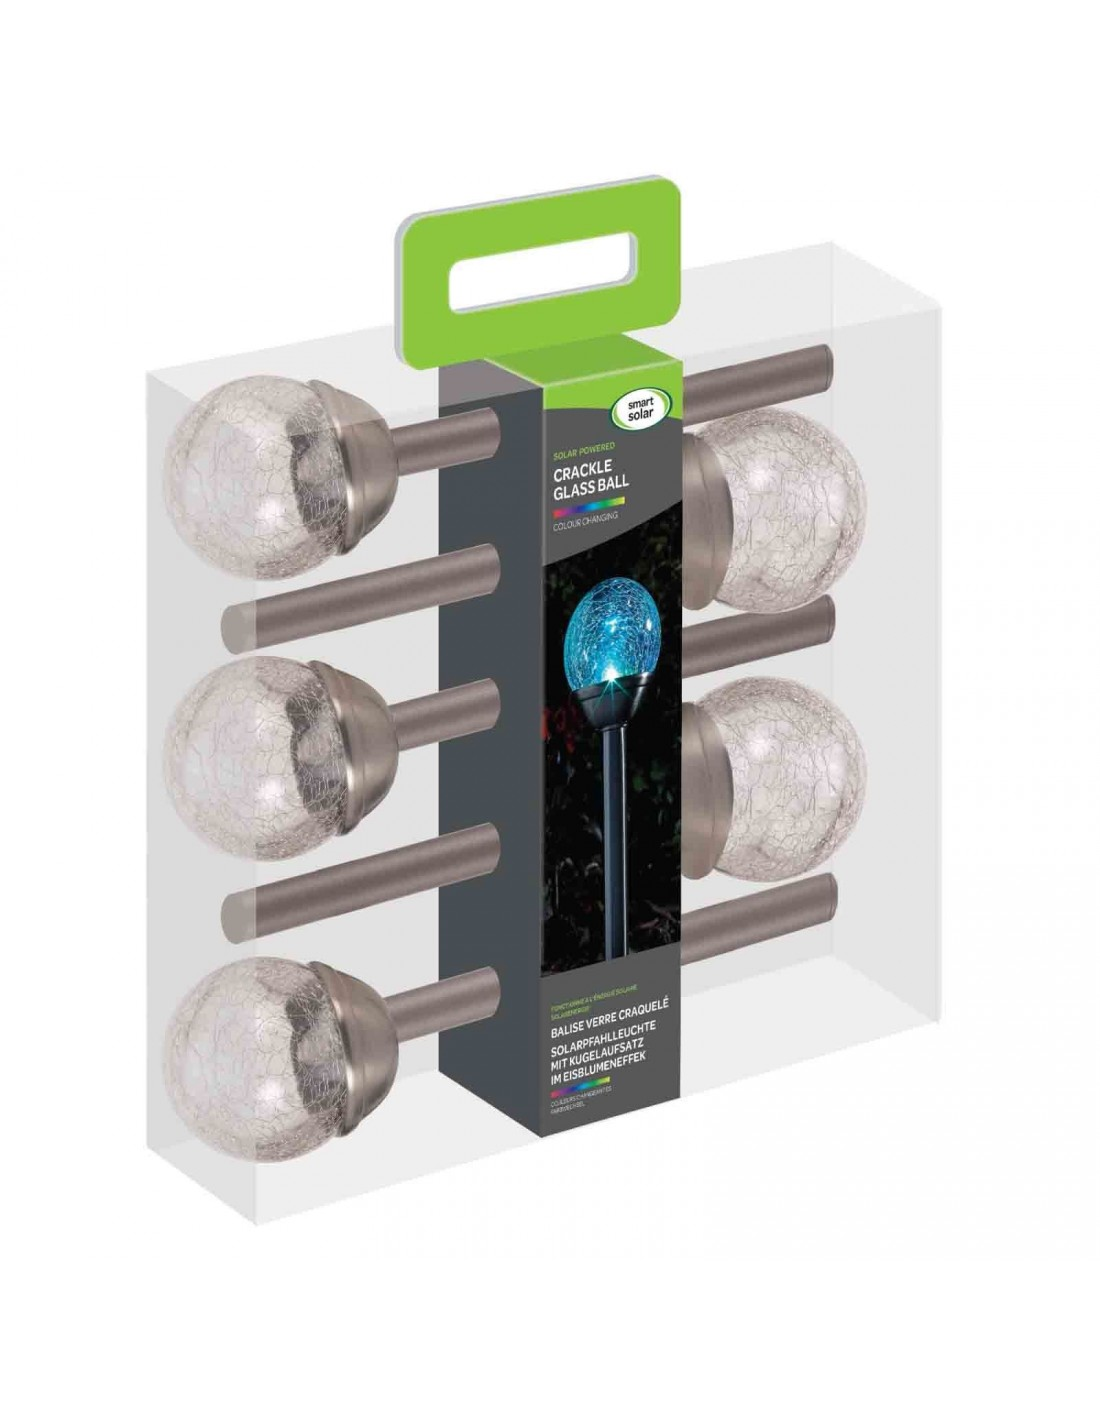 Crackle Globe - Stainless Steel 5pc Carry Pack Display